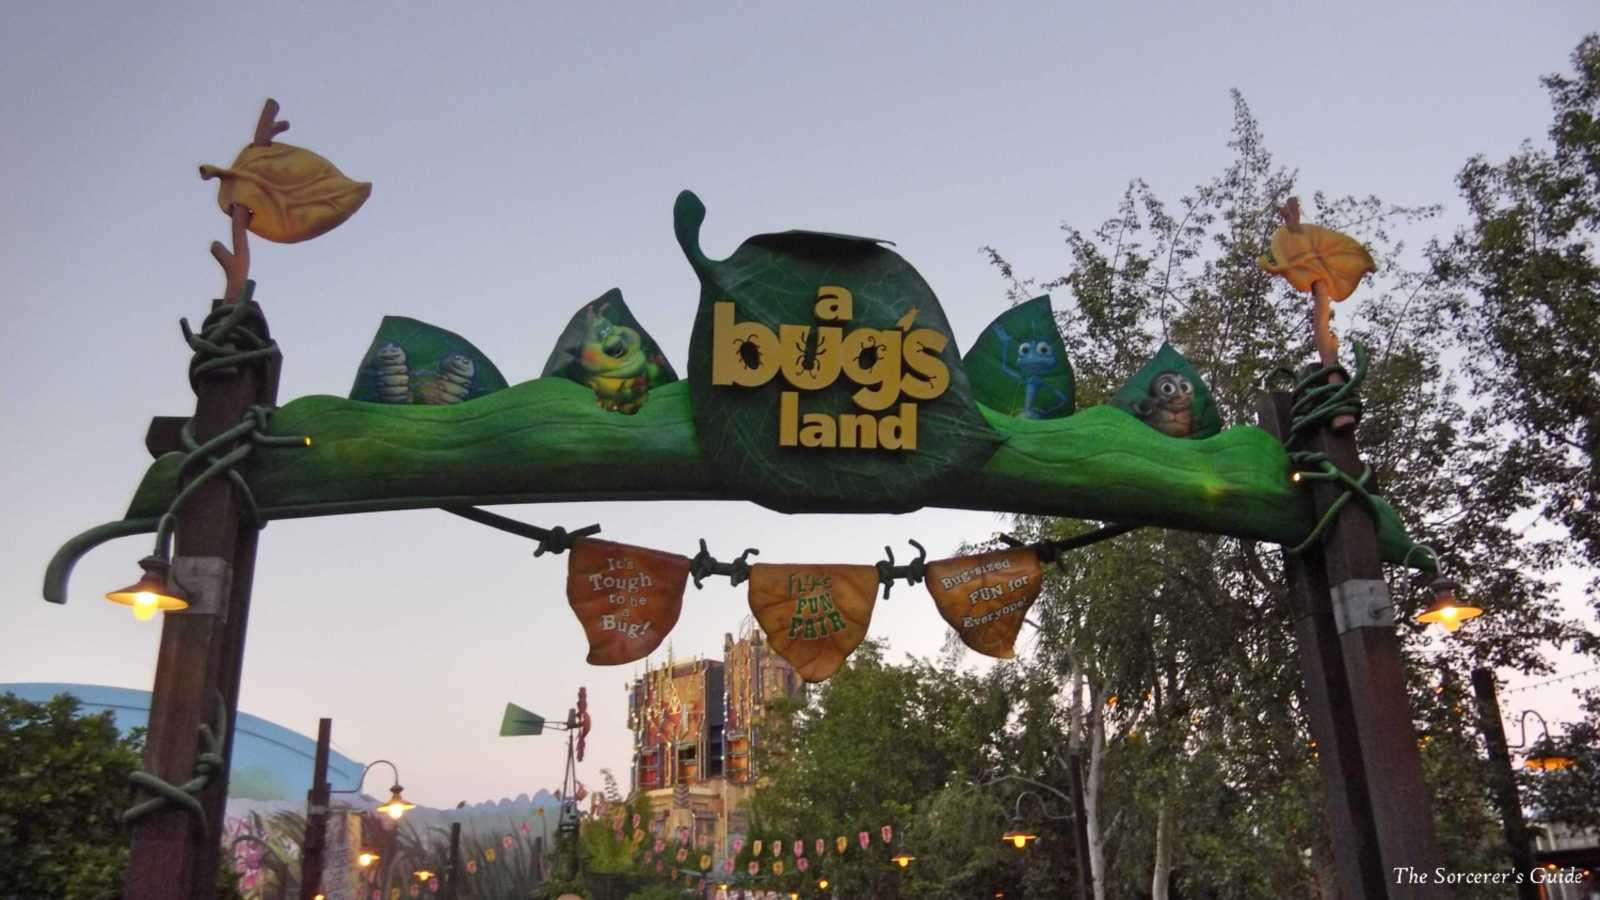 A Bug's Land entrance sign